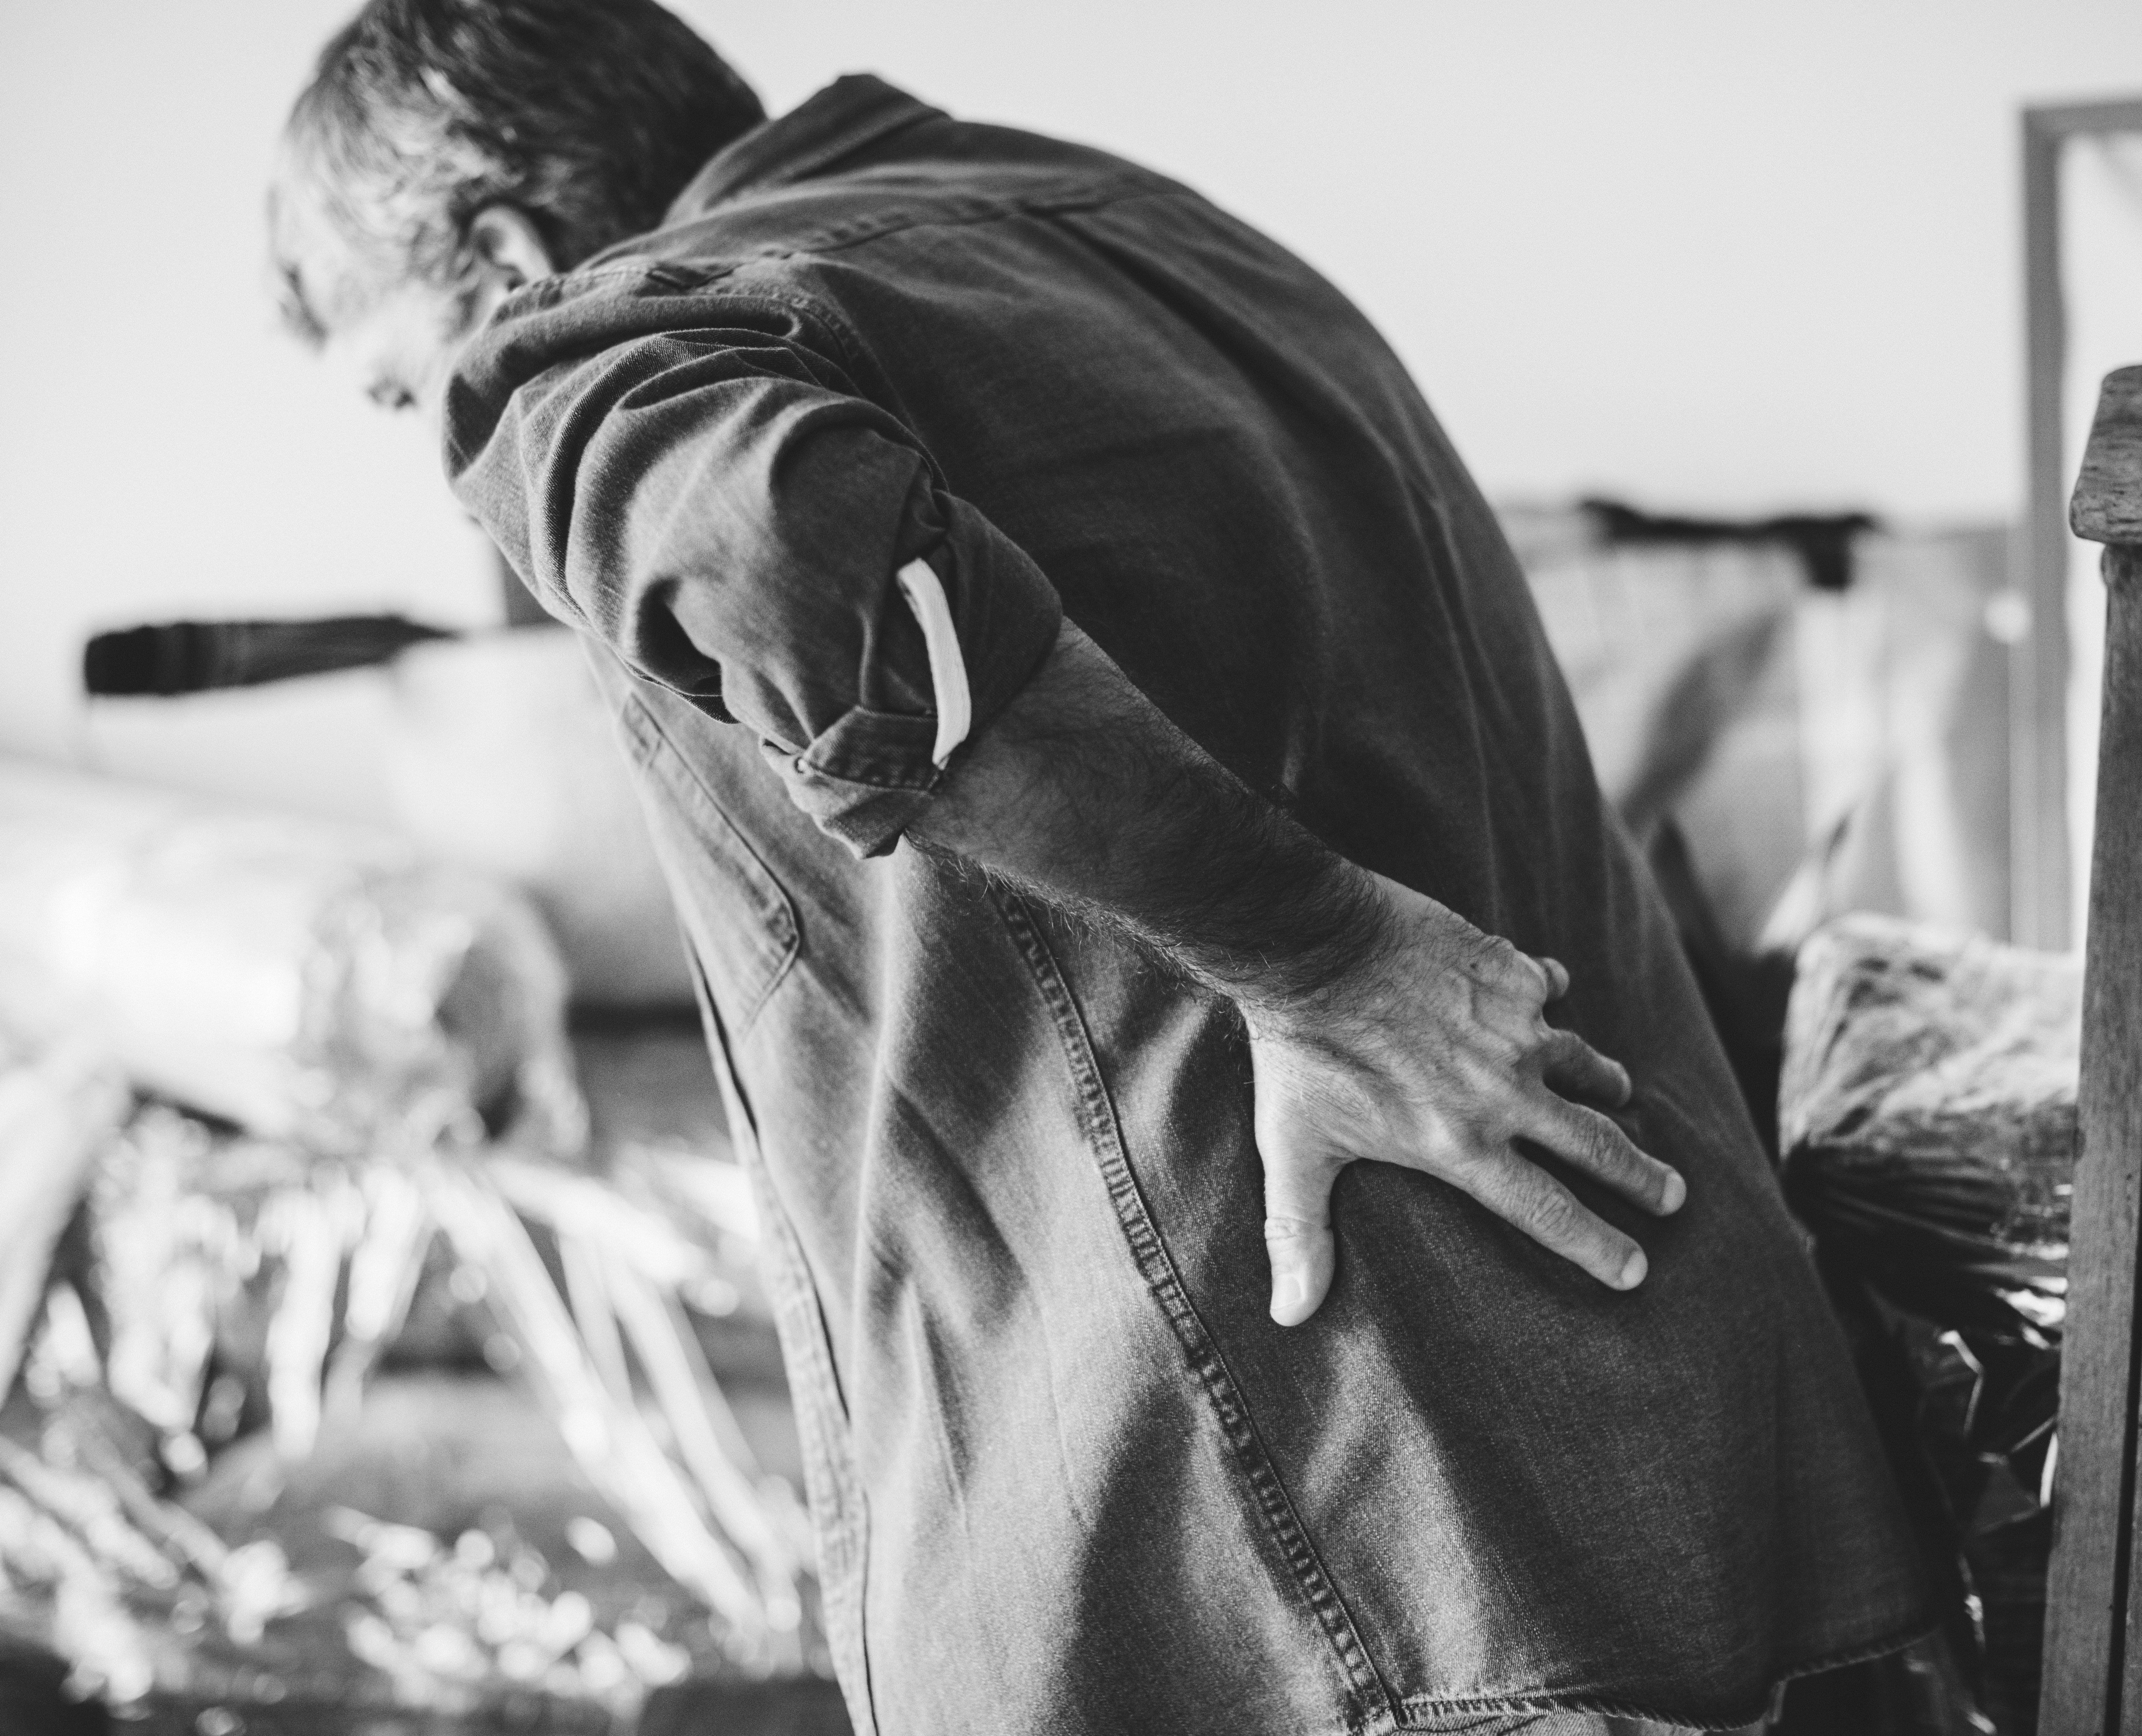 Disease-stricken old man touching his back out of pain. | Source: Pexels